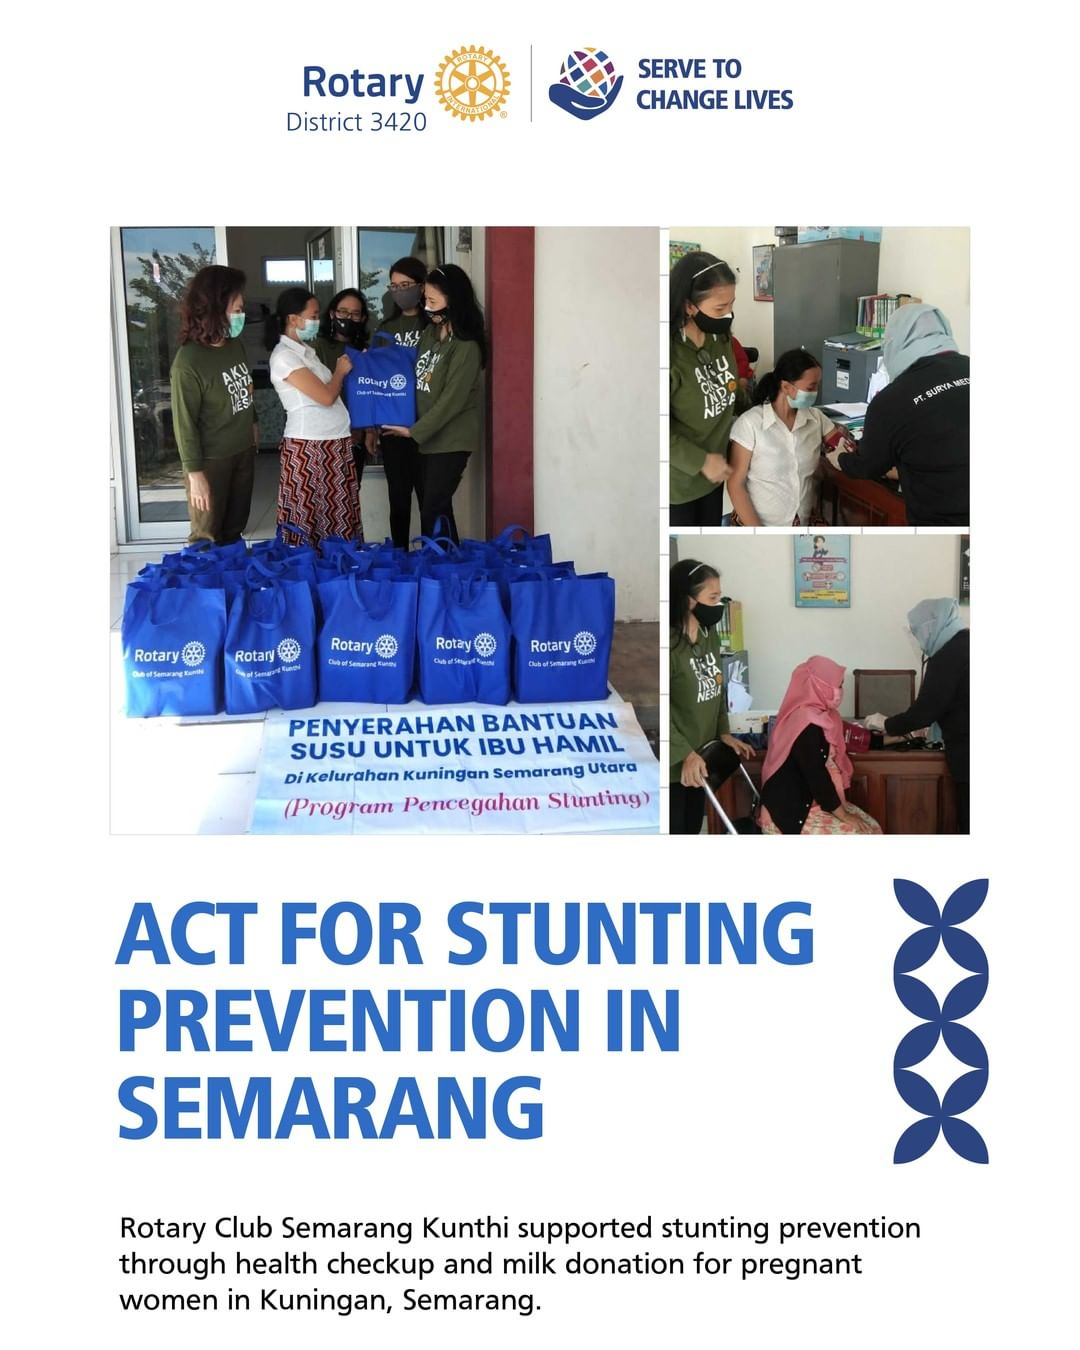 Act for Stunting Prevention in Semarang